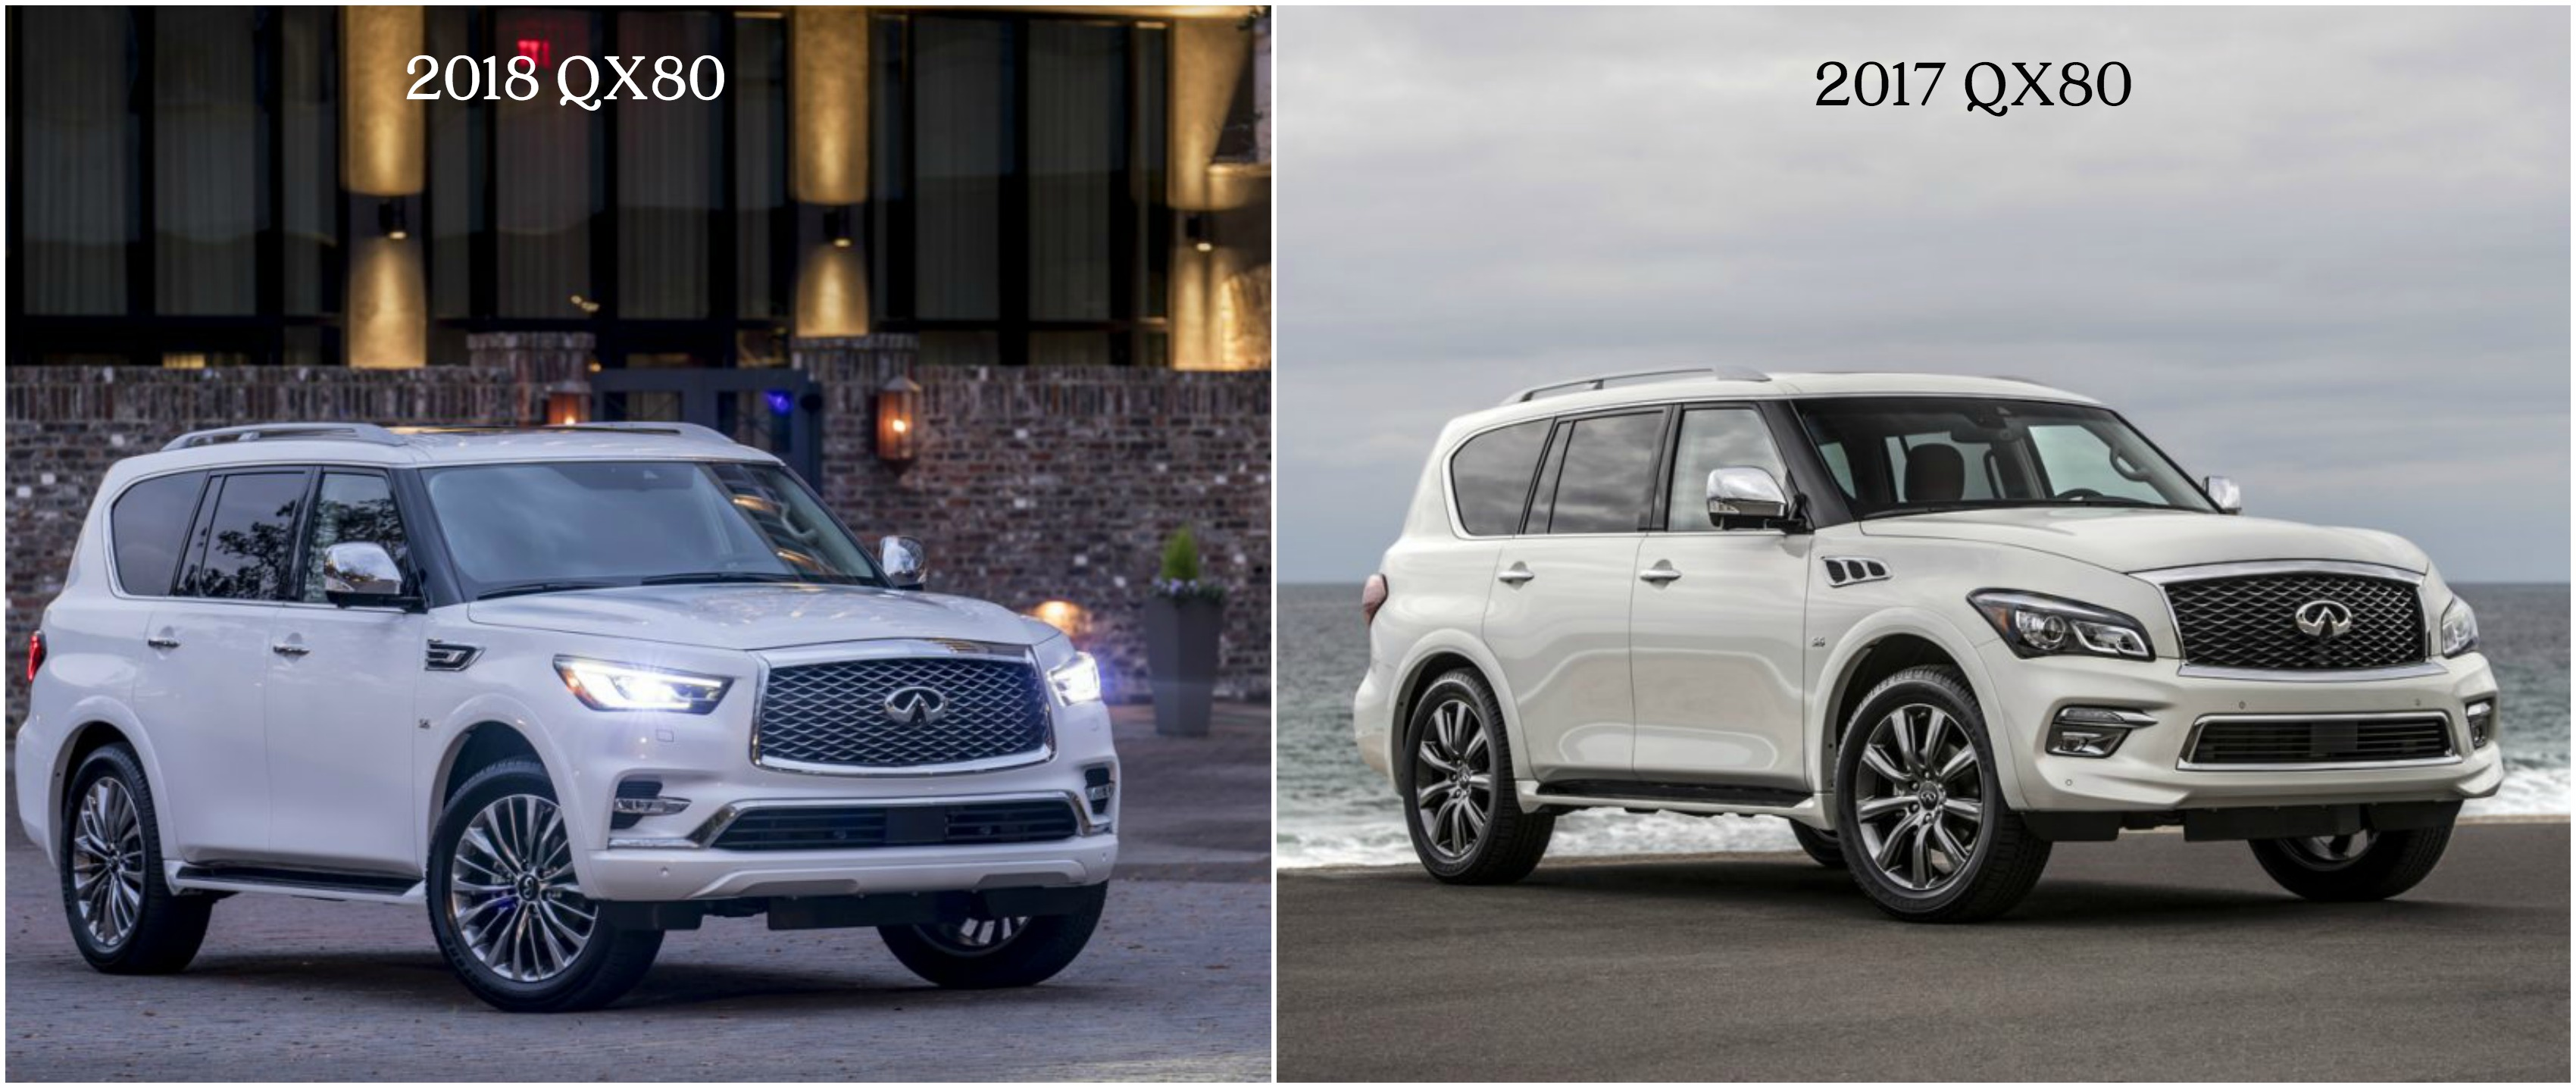 the 2018 infiniti qx80 infiniti 39 s family suv grows up. Black Bedroom Furniture Sets. Home Design Ideas